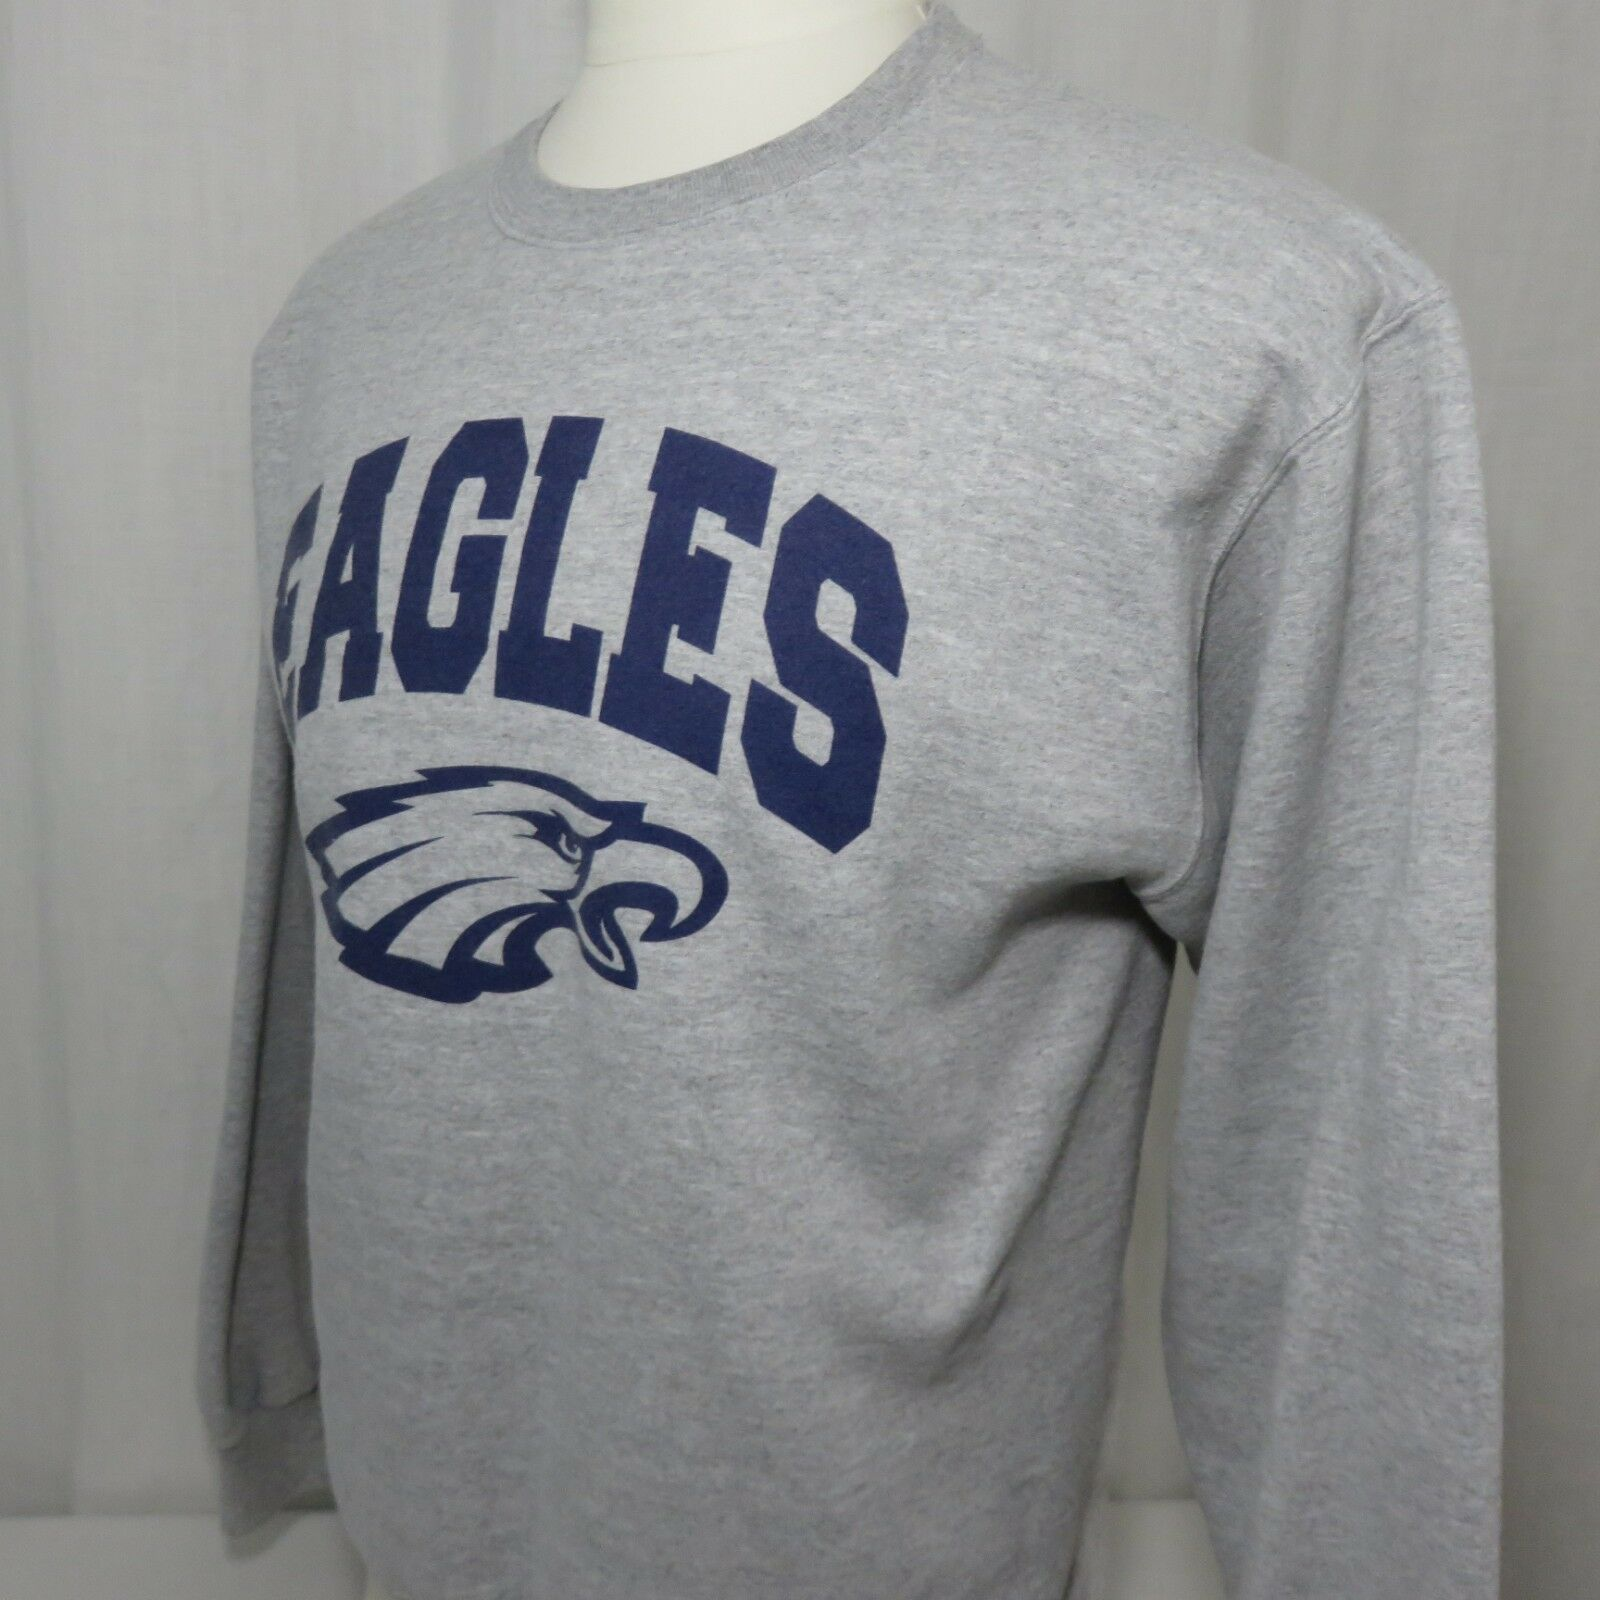 Vintage Champion Philadelphia Eagles Crew Neck Sweatshirt M Gray